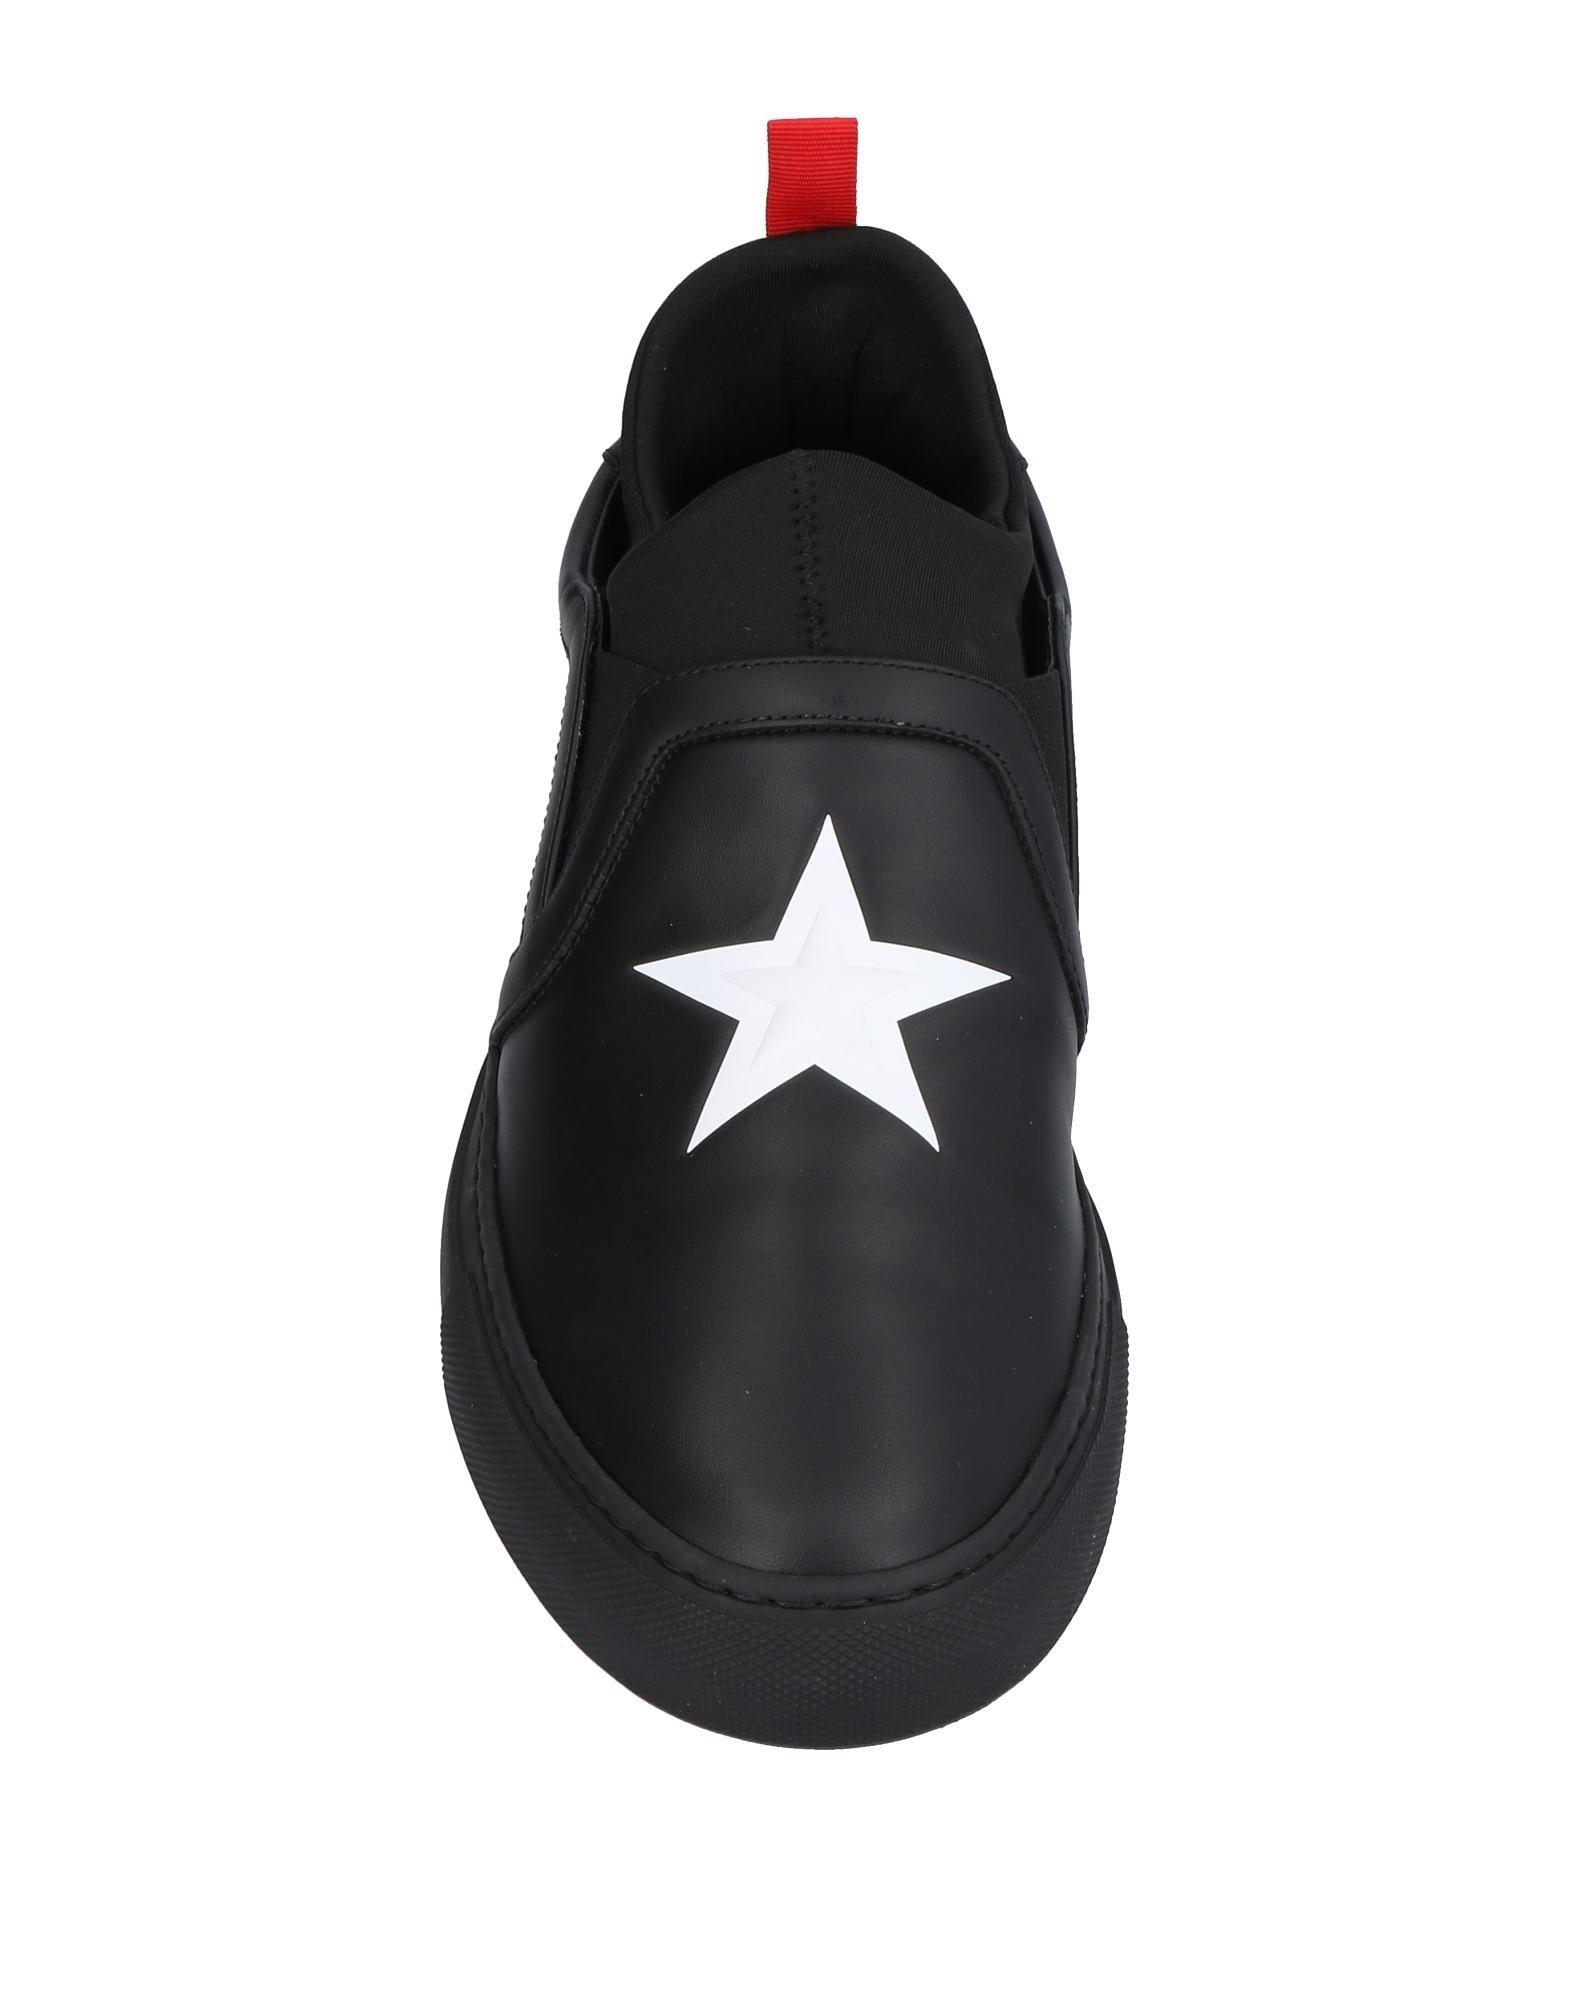 Givenchy Neoprene Low-tops & Sneakers in Black for Men